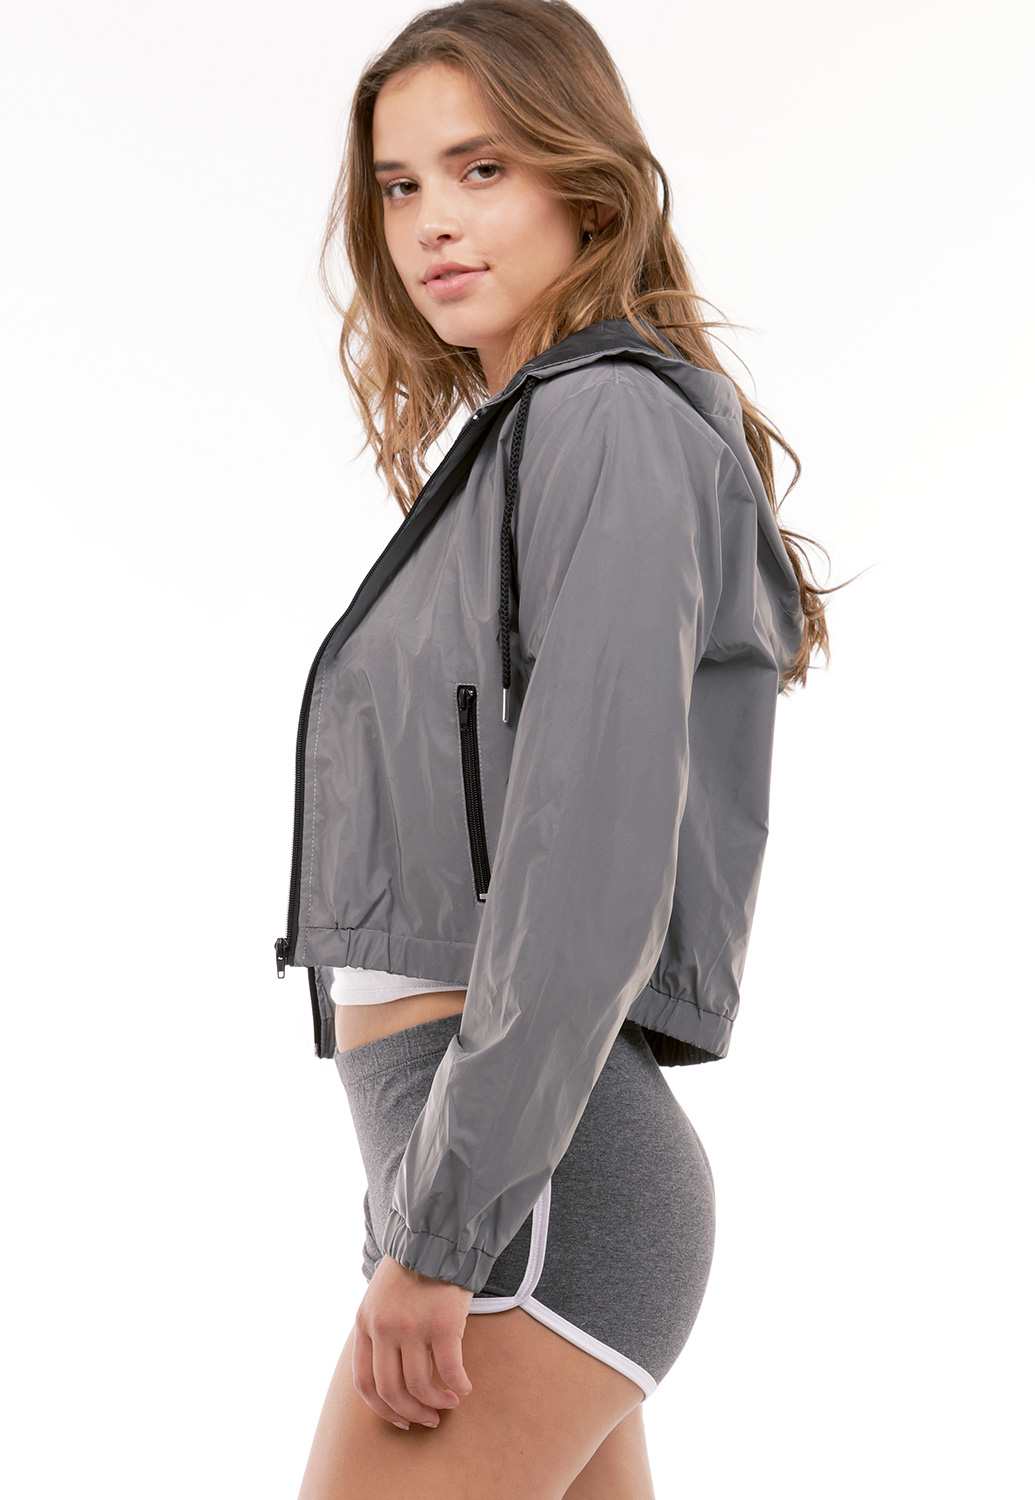 Zip Up Activewear Jacket